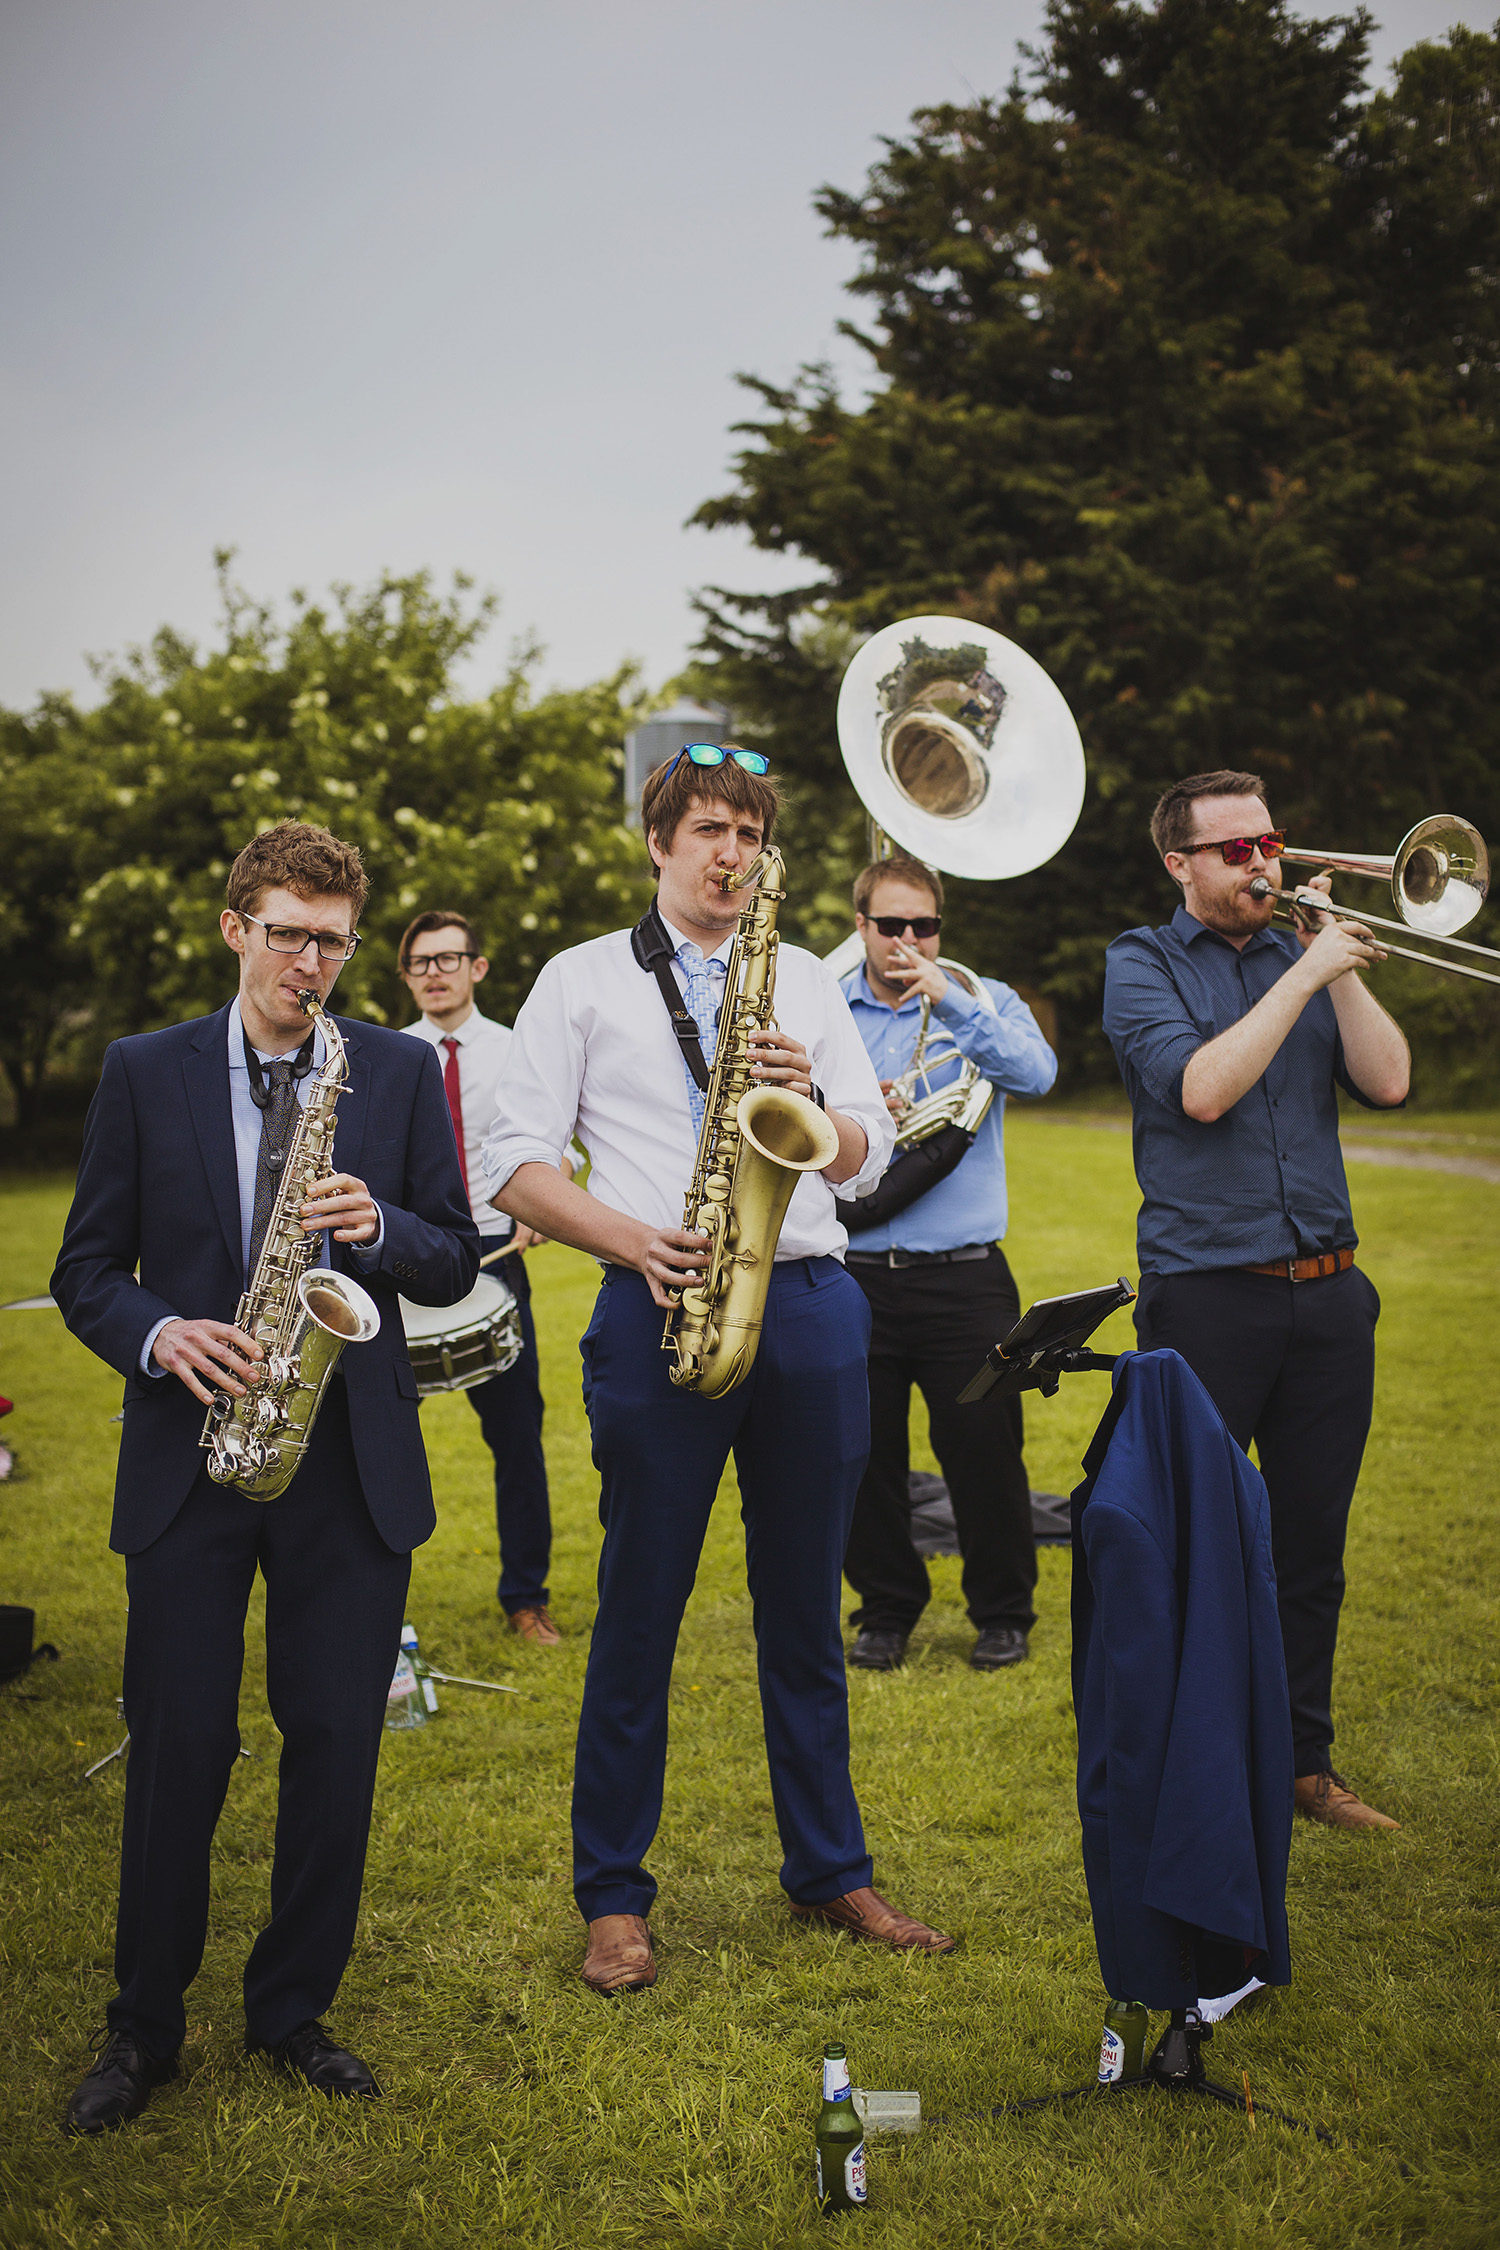 tuba libres playing after bride and groom walking down the isle at wedding ceremony at cott farm barn wedding venue somerset